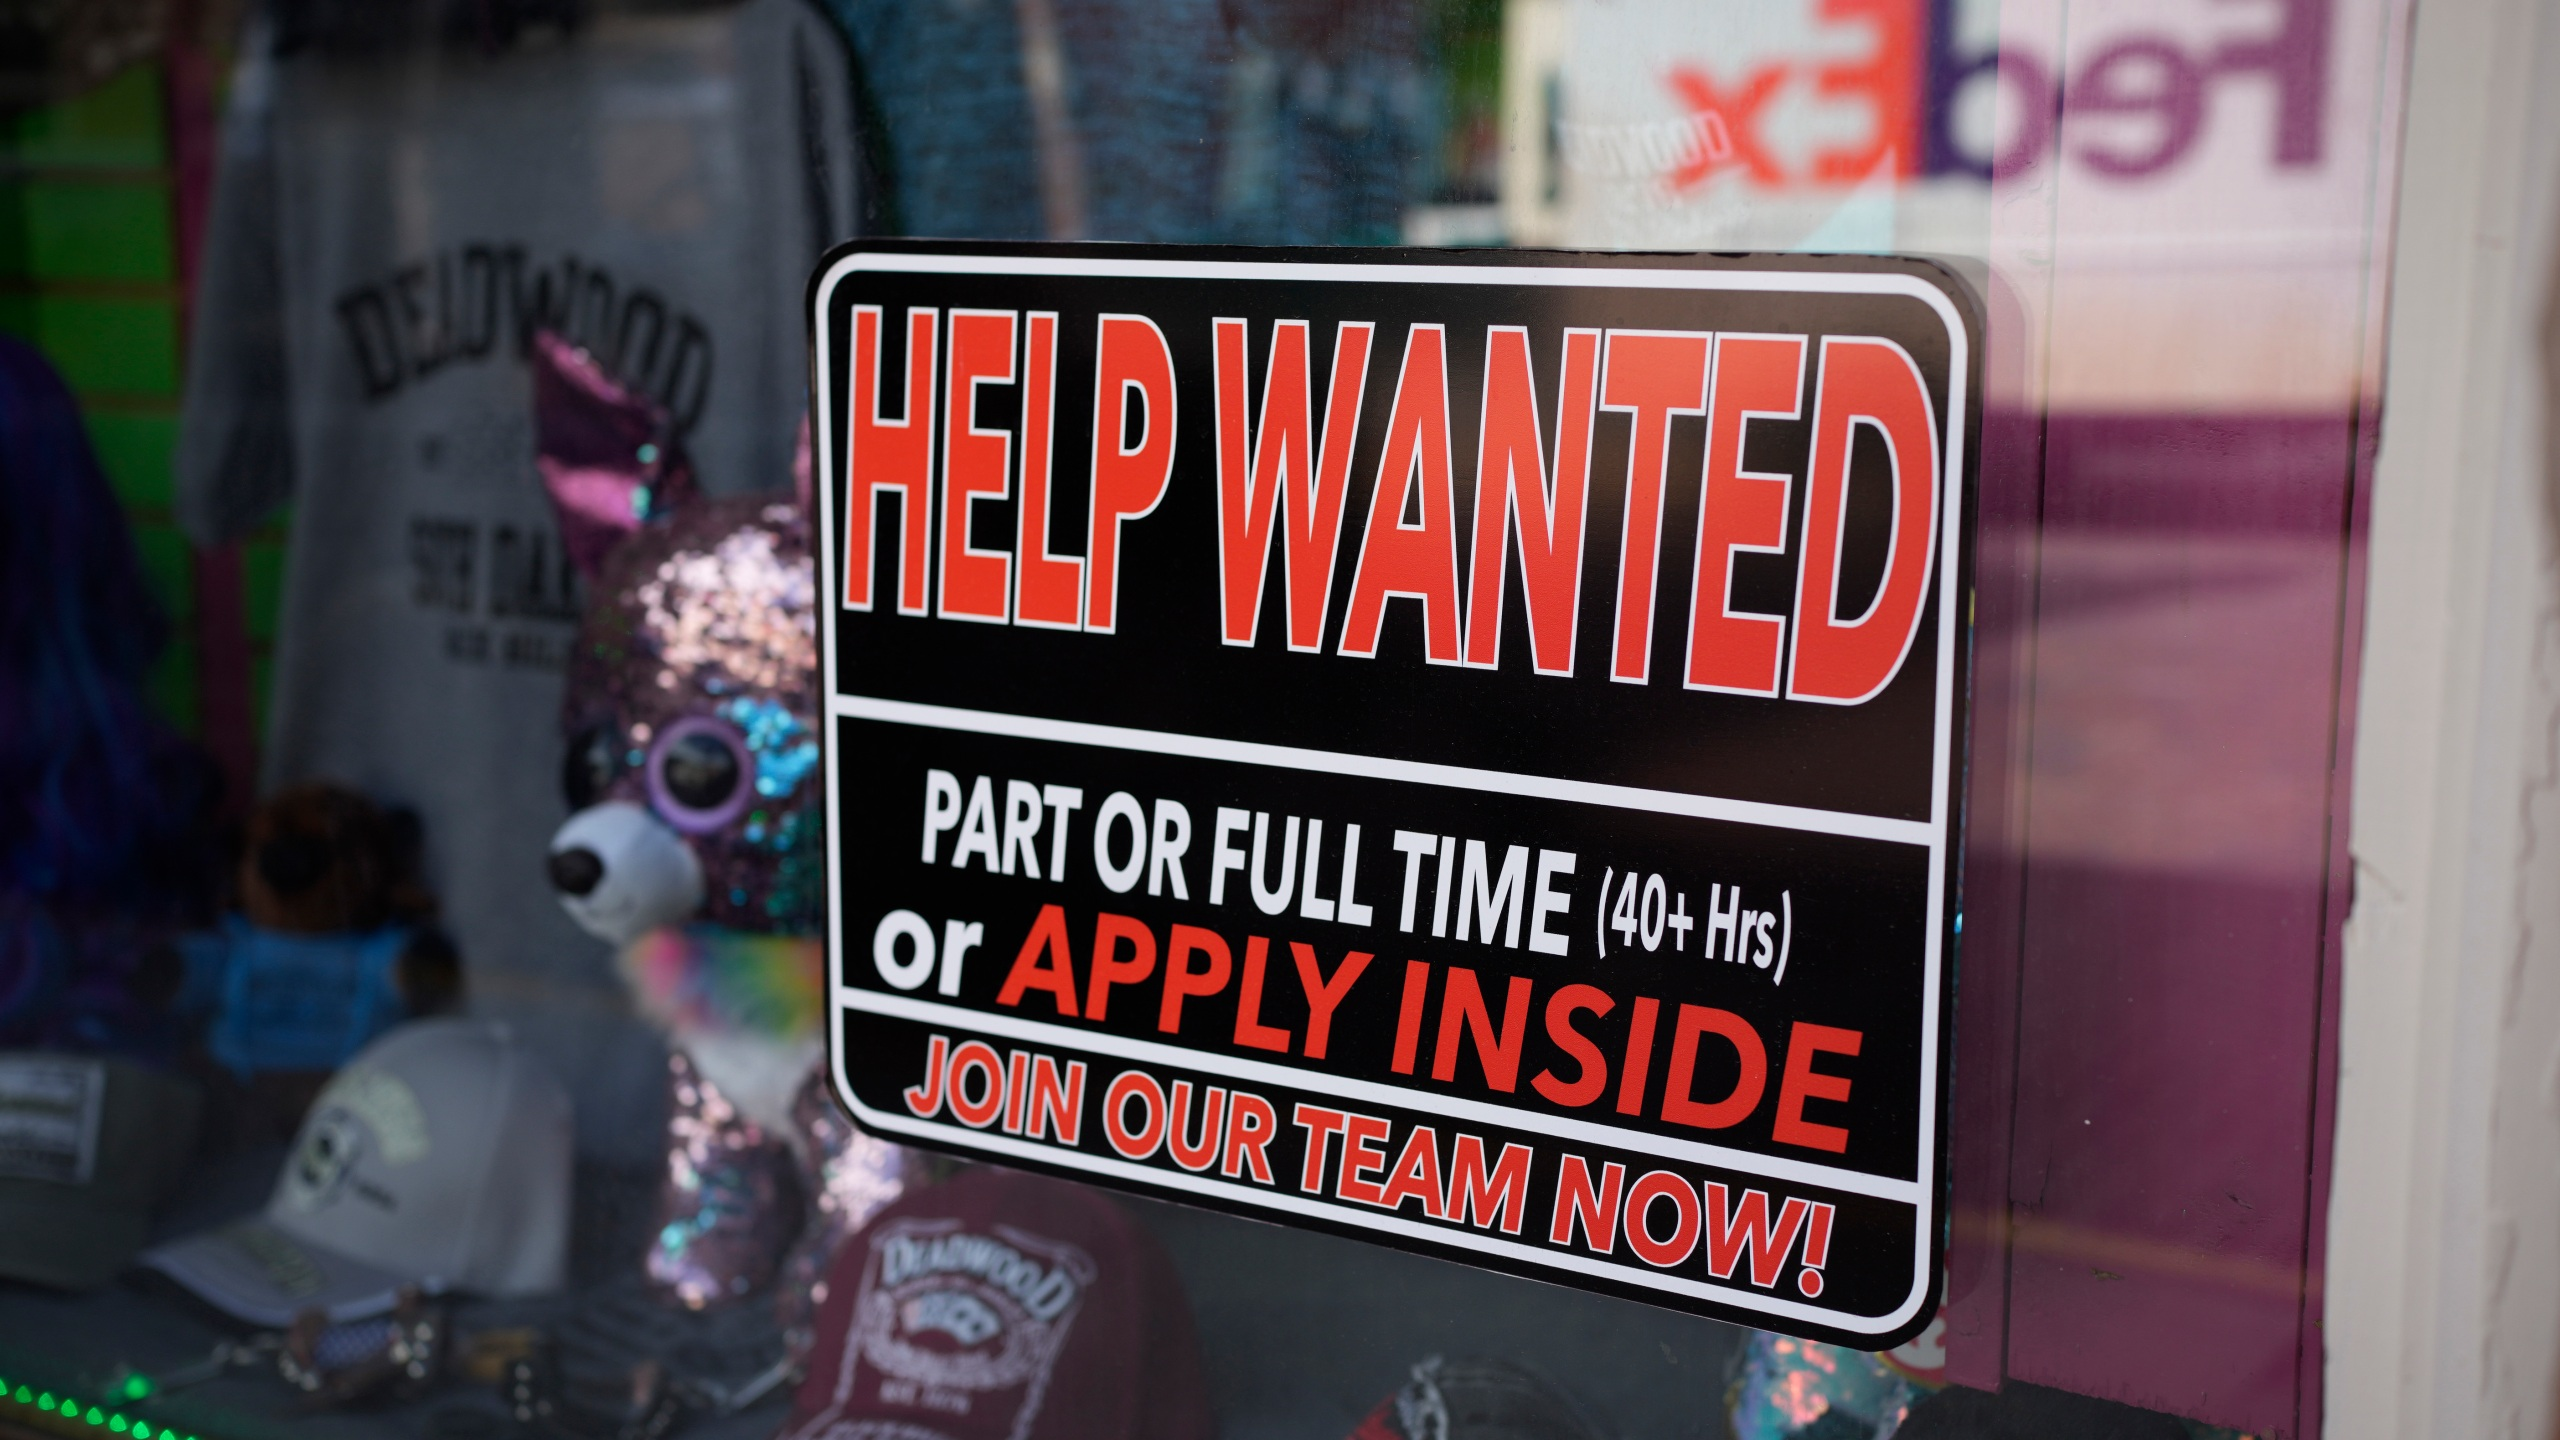 In this May 26, 2021 photo, a sign for workers hangs in the window of a shop along Main Street in Deadwood, S.D. U.S. employers added 559,000 jobs in May, an improvement from April's sluggish gain but still evidence that many companies are struggling to find enough workers as the economy rapidly recovers from the pandemic recession. (AP Photo/David Zalubowski)